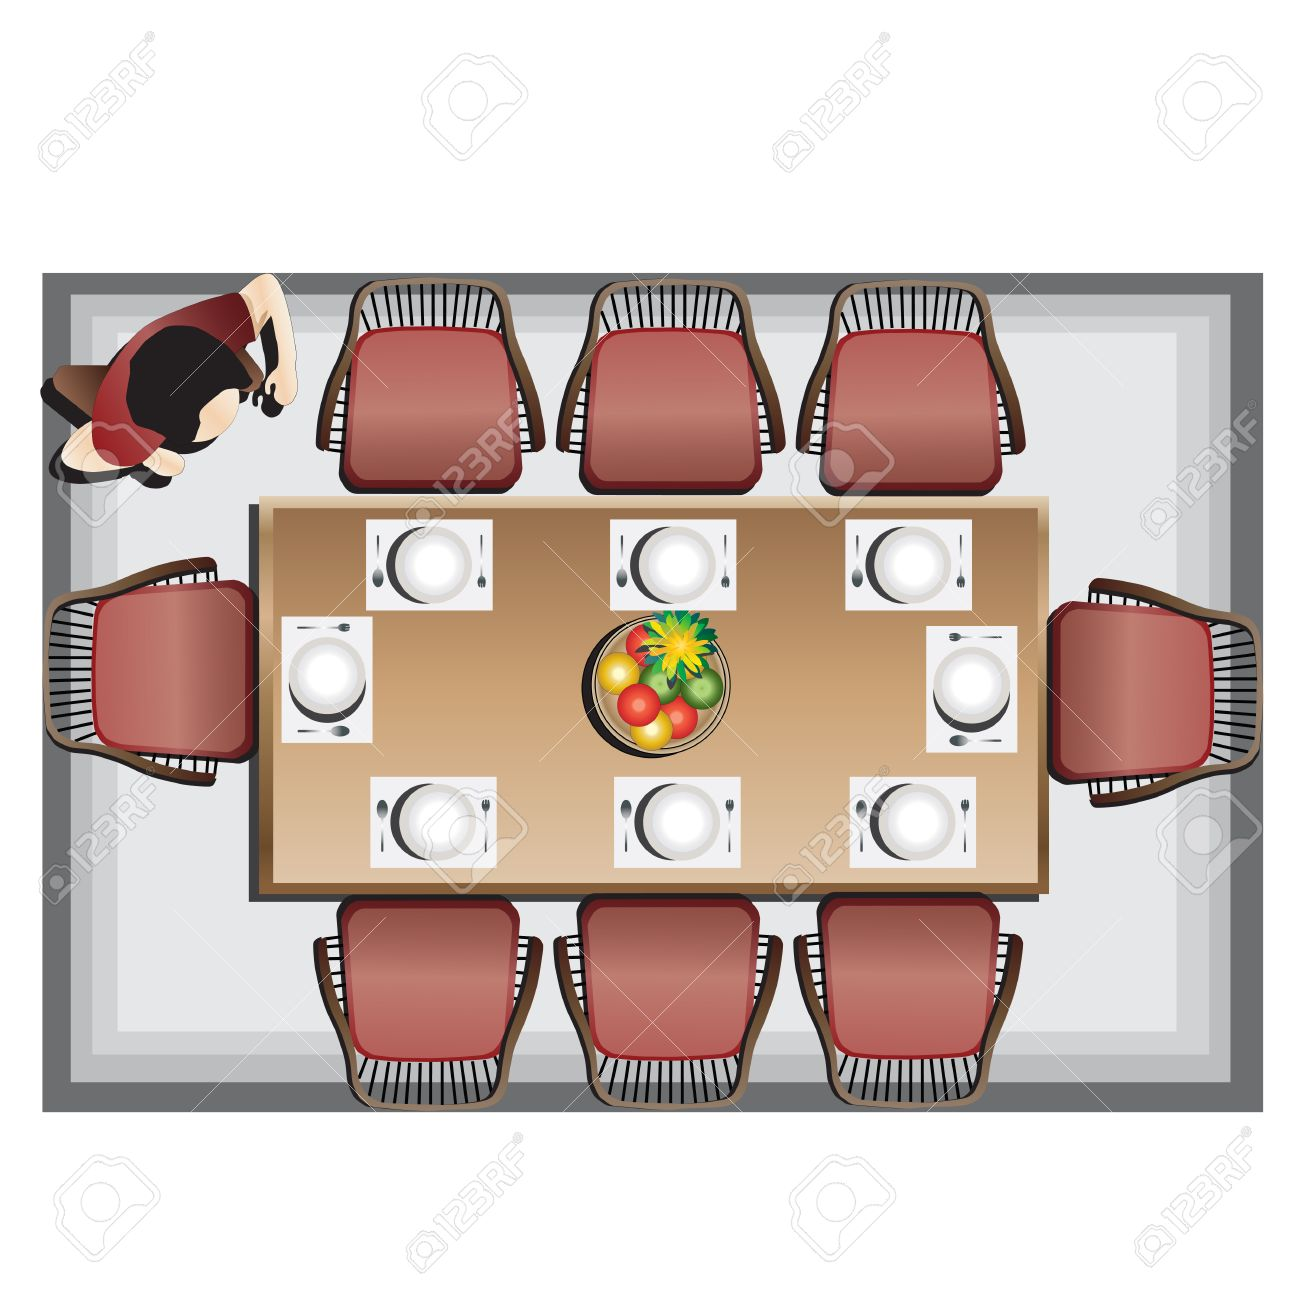 Dining furniture top view set 3 for interior, vector illustration - 45292898